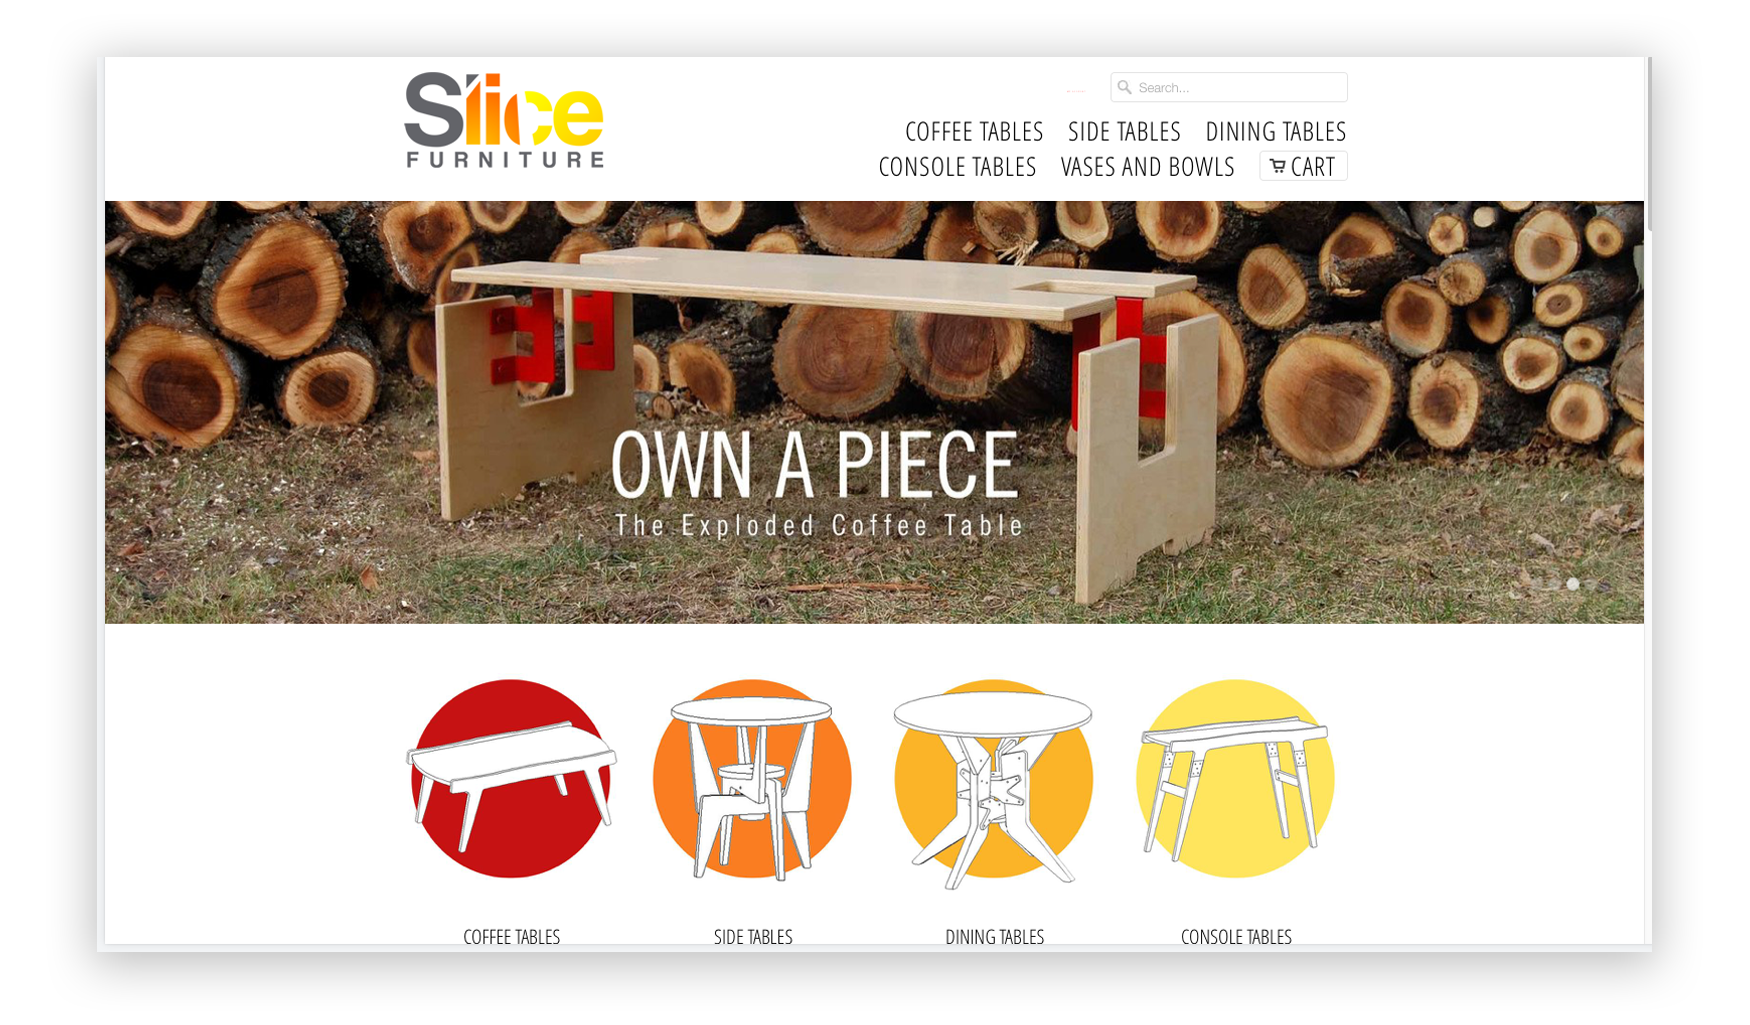 slice-furniture-desktop-mockup-old-1.png